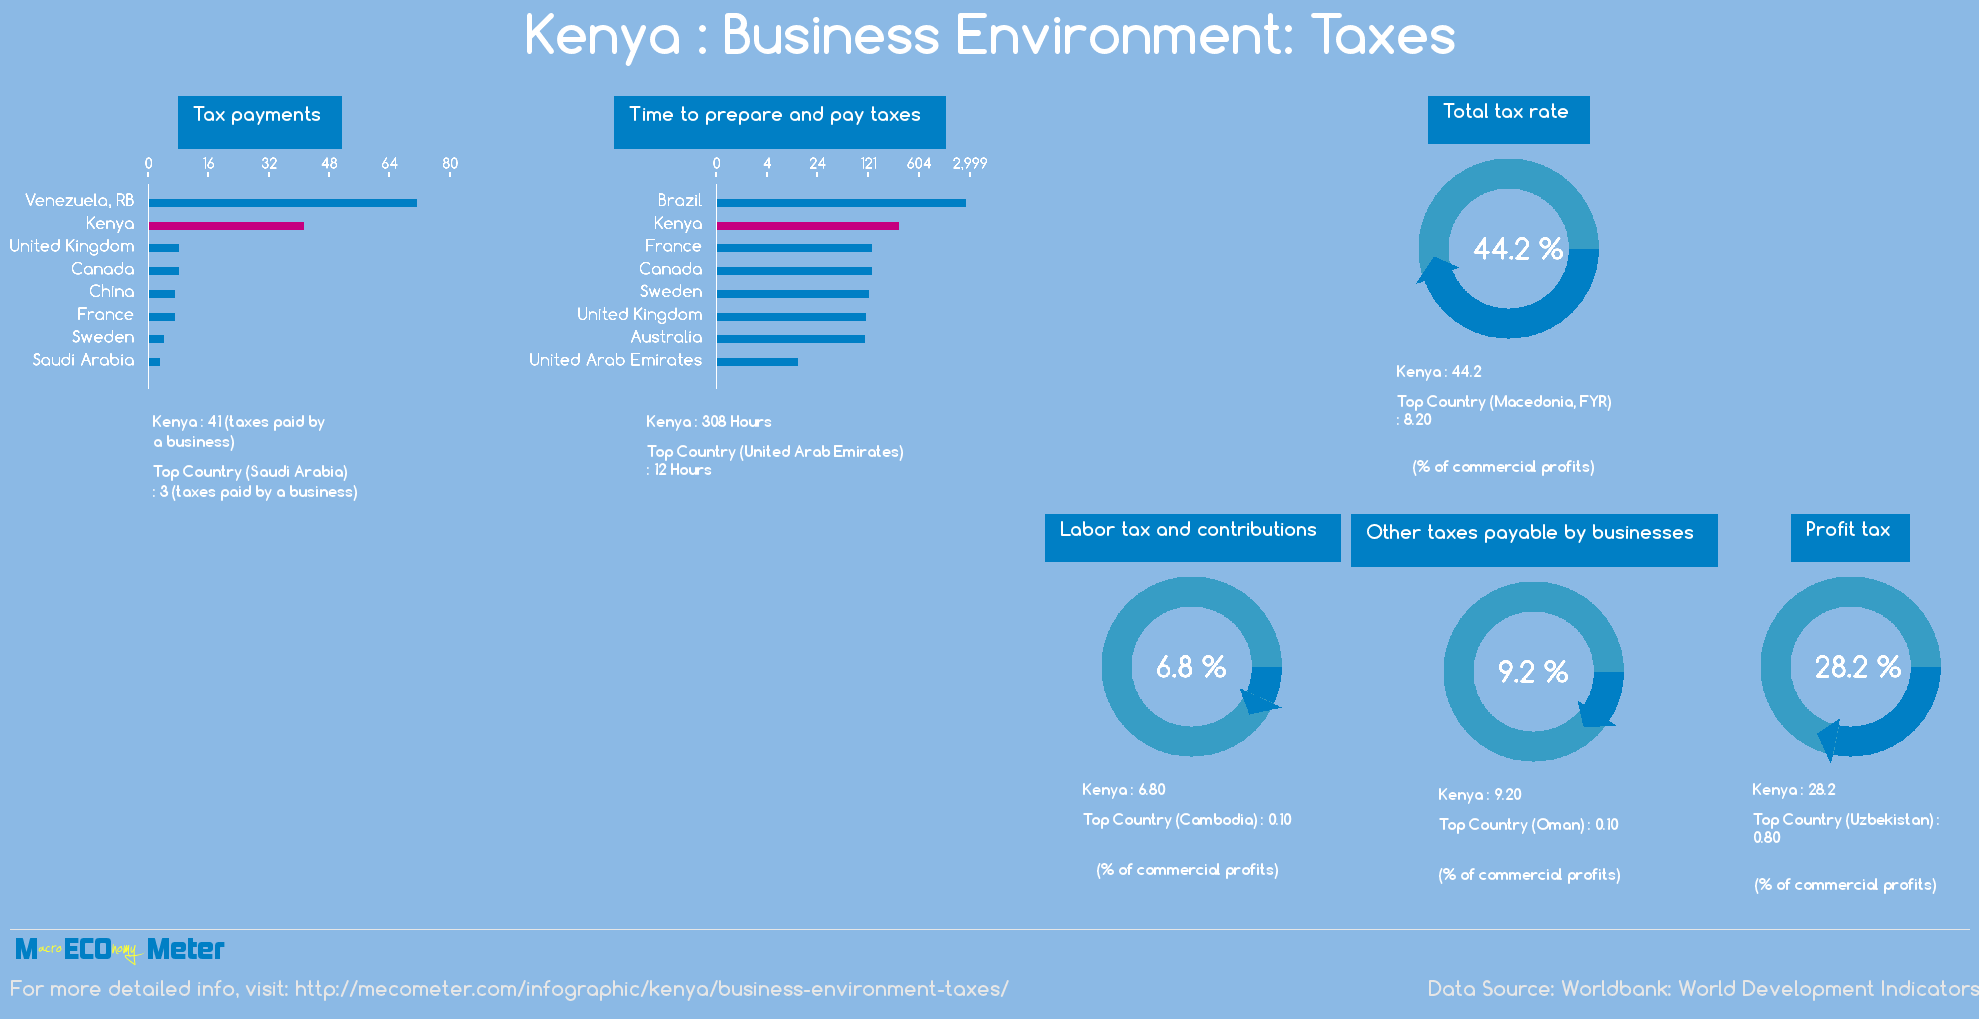 Kenya : Business Environment: Taxes